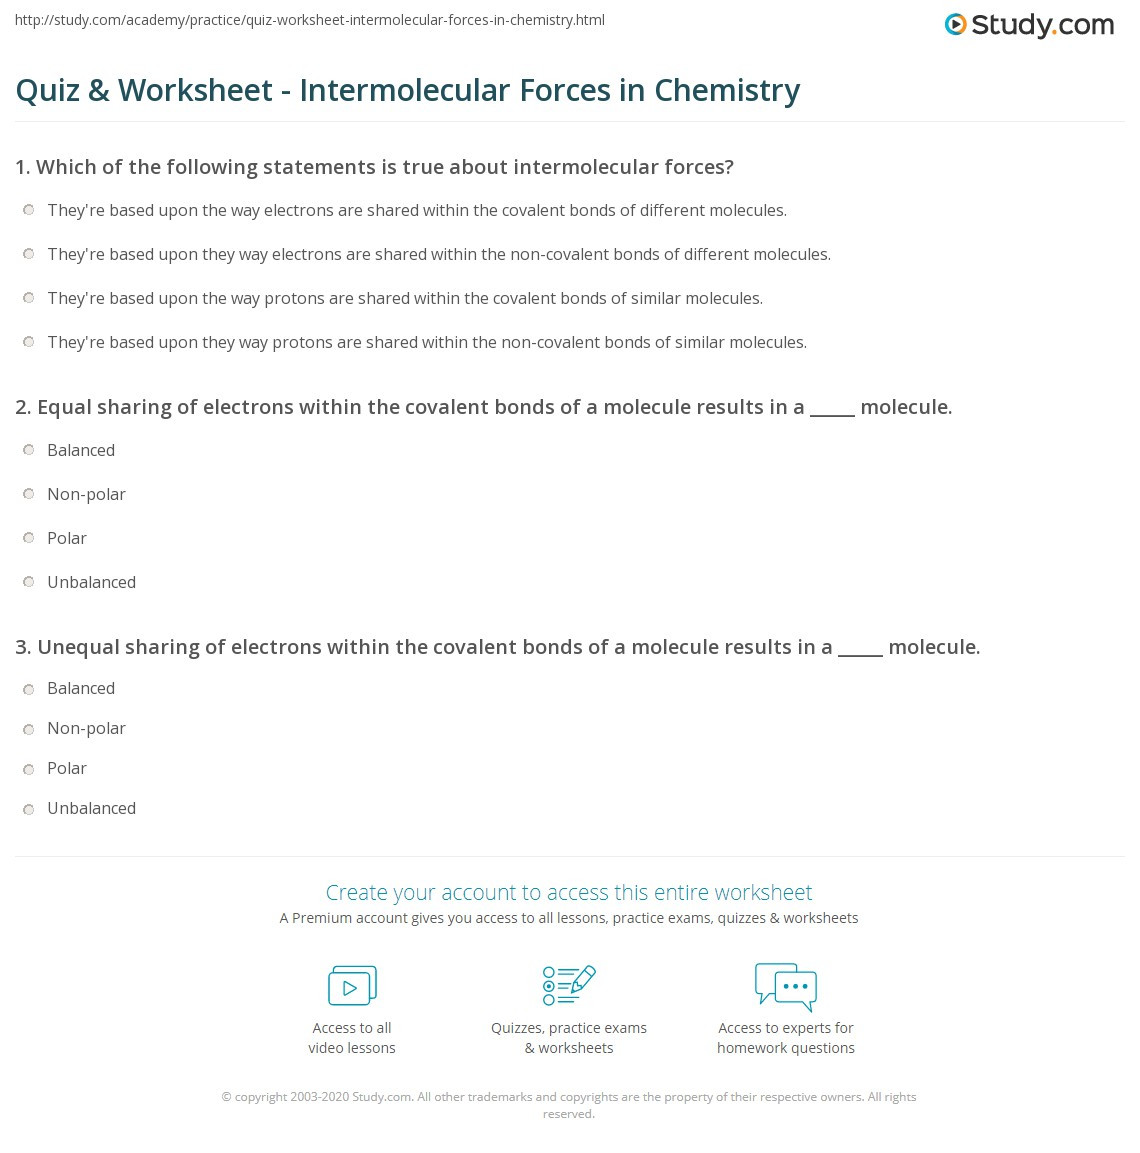 Quiz & Worksheet Intermolecular Forces in Chemistry